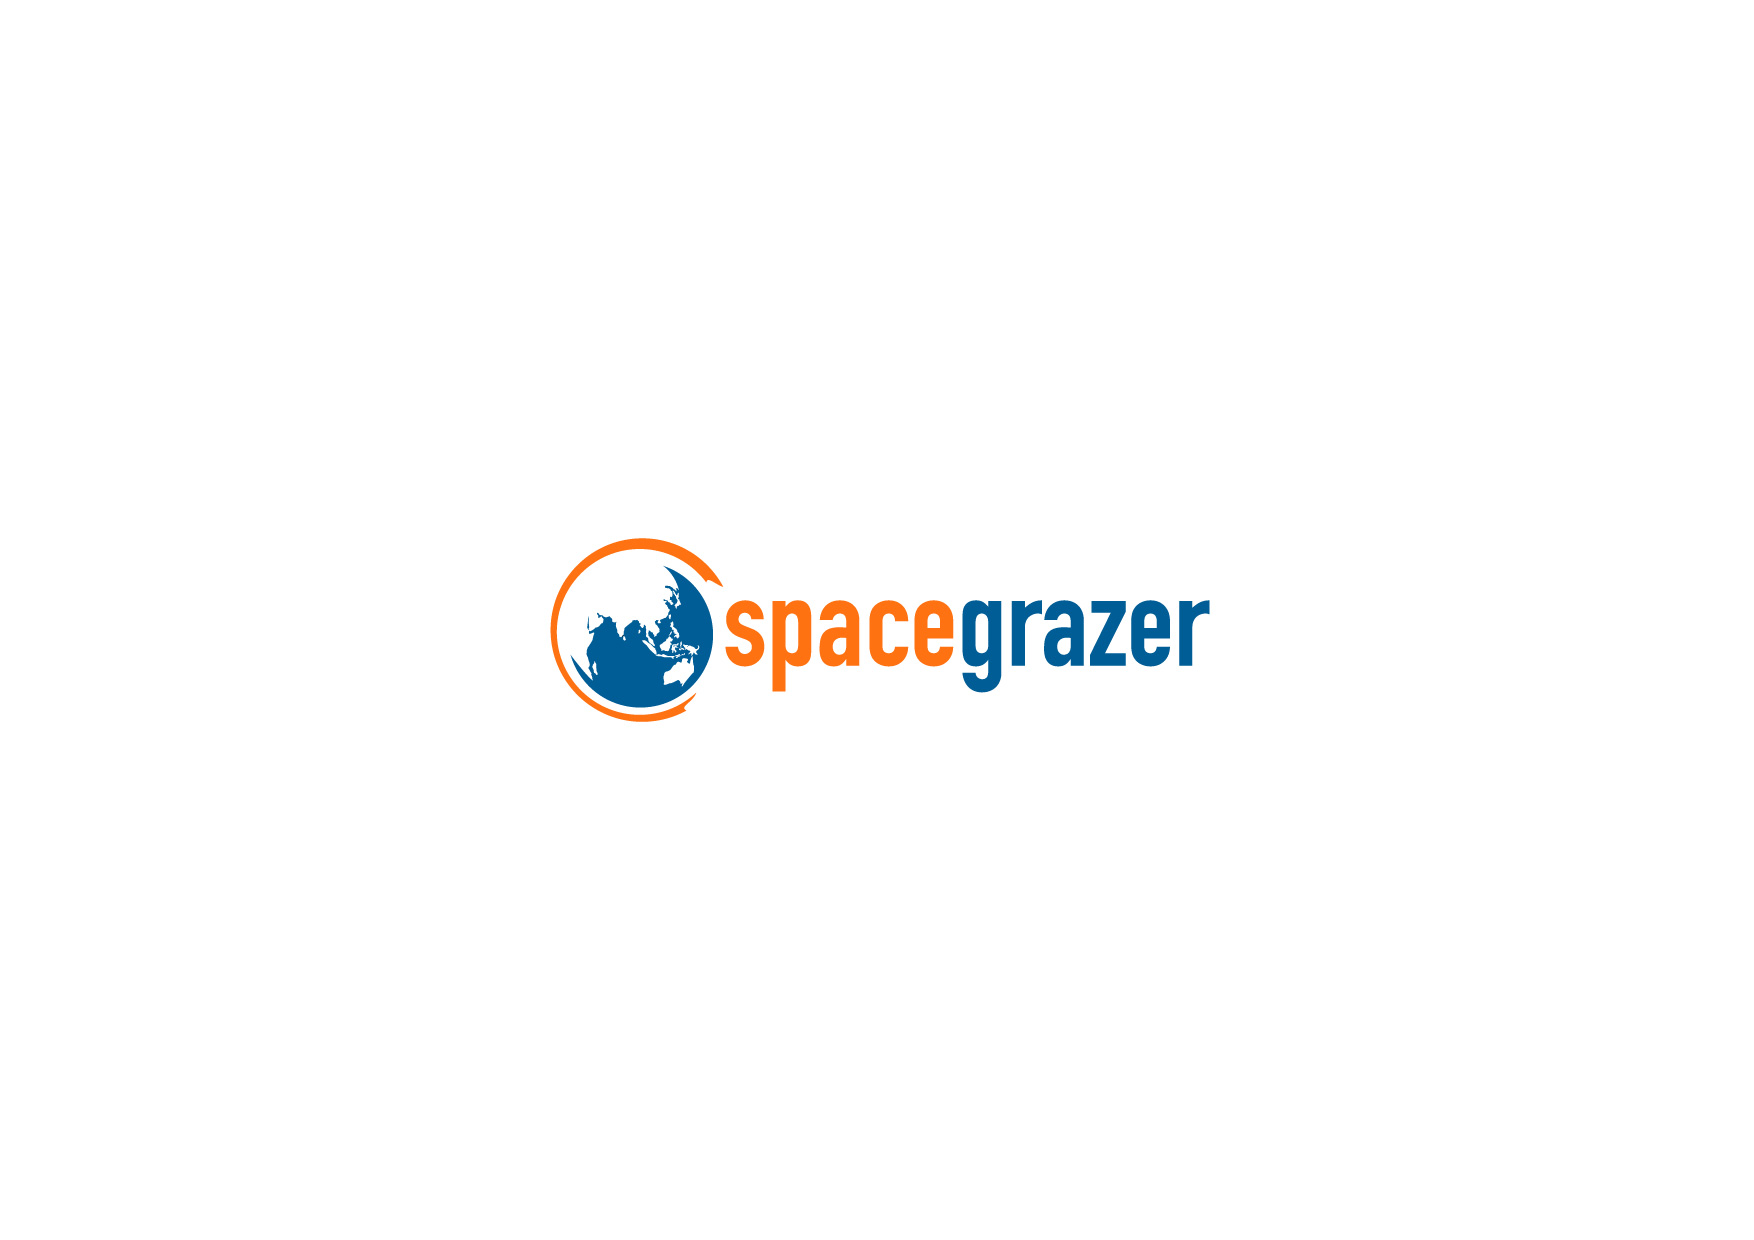 Logo Design by Osi Indra - Entry No. 31 in the Logo Design Contest Fun Logo Design for Spacegrazer.